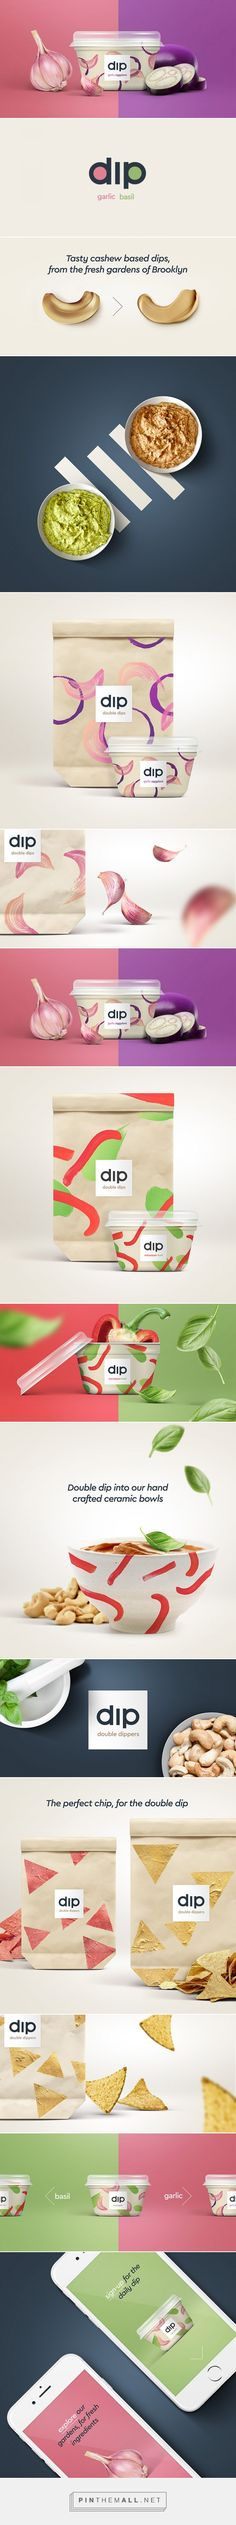 Double Dips - Daily Package Design InspirationDaily Package Design Inspiration | - created via https://pinthemall.net